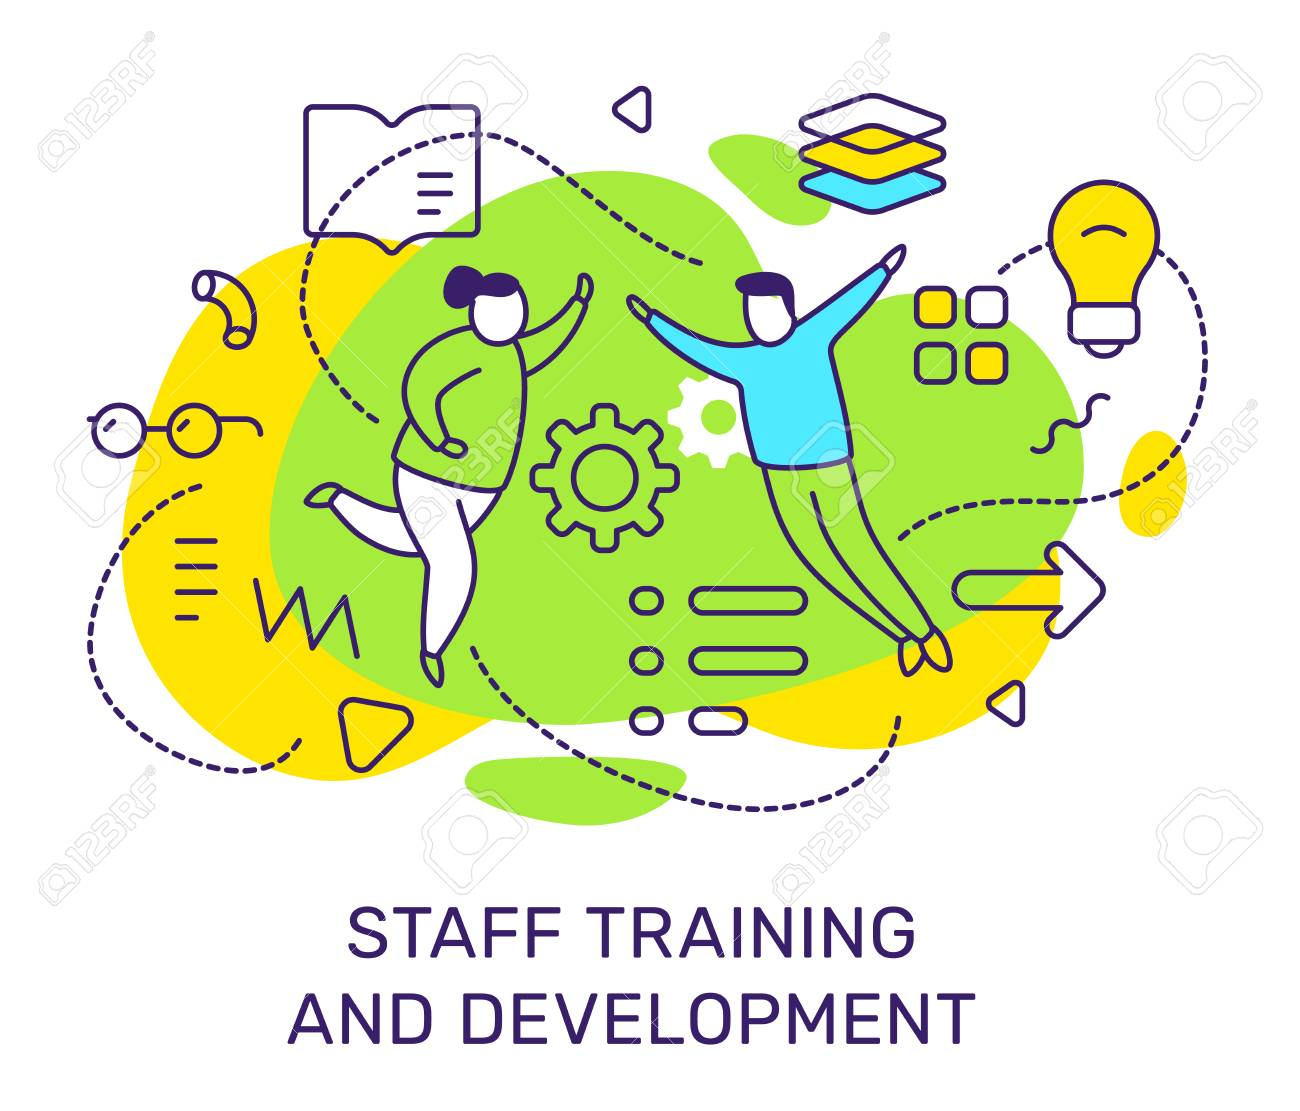 Vector business illustration of people with light bulb, book icon on green background. Staff training and development concept with man, woman, text. Line art style design for web, site, poster, banner - 123138689